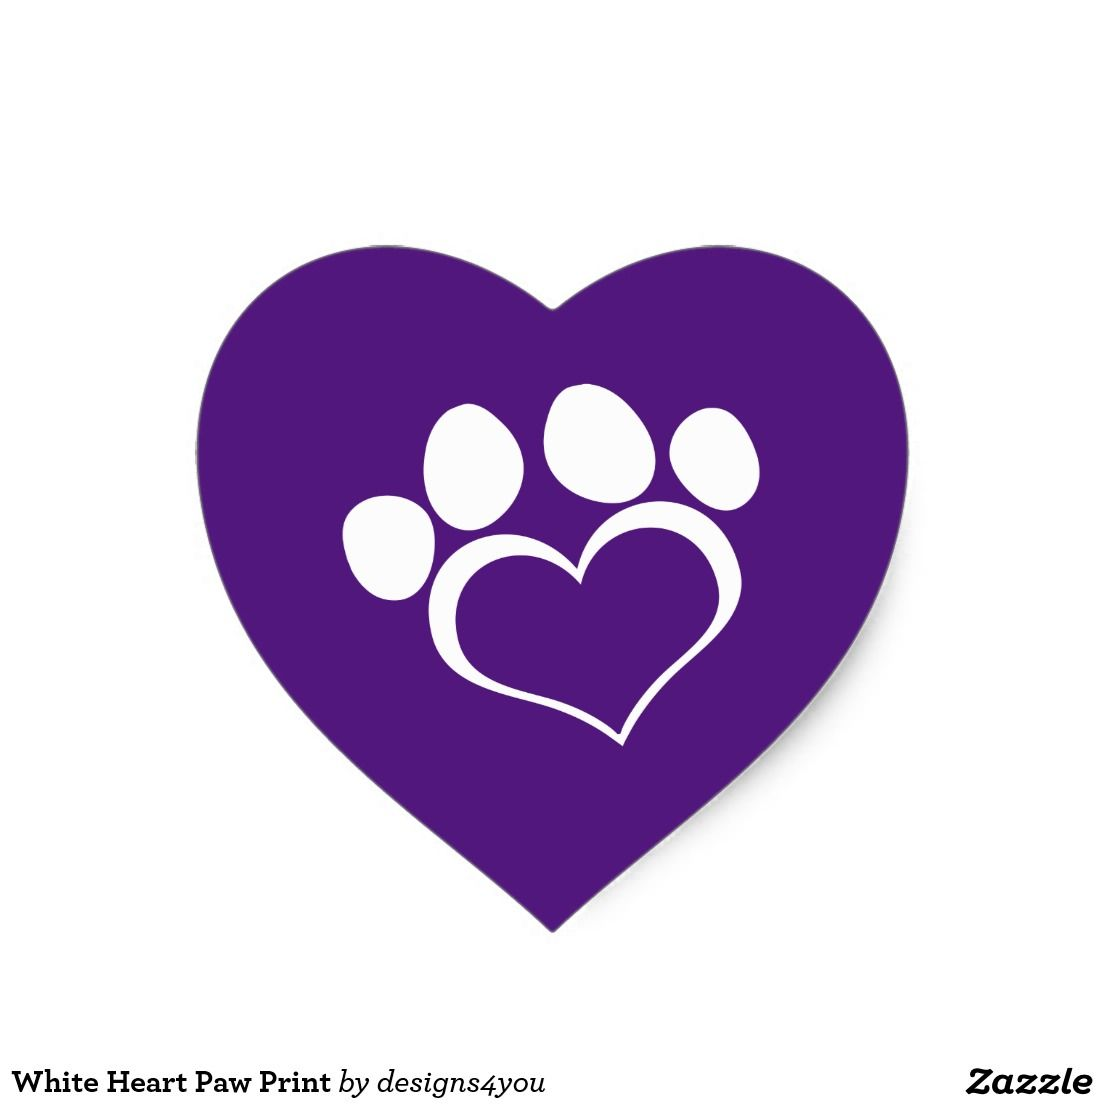 Royal Purple and White Heart Paw Print Heart Sticker